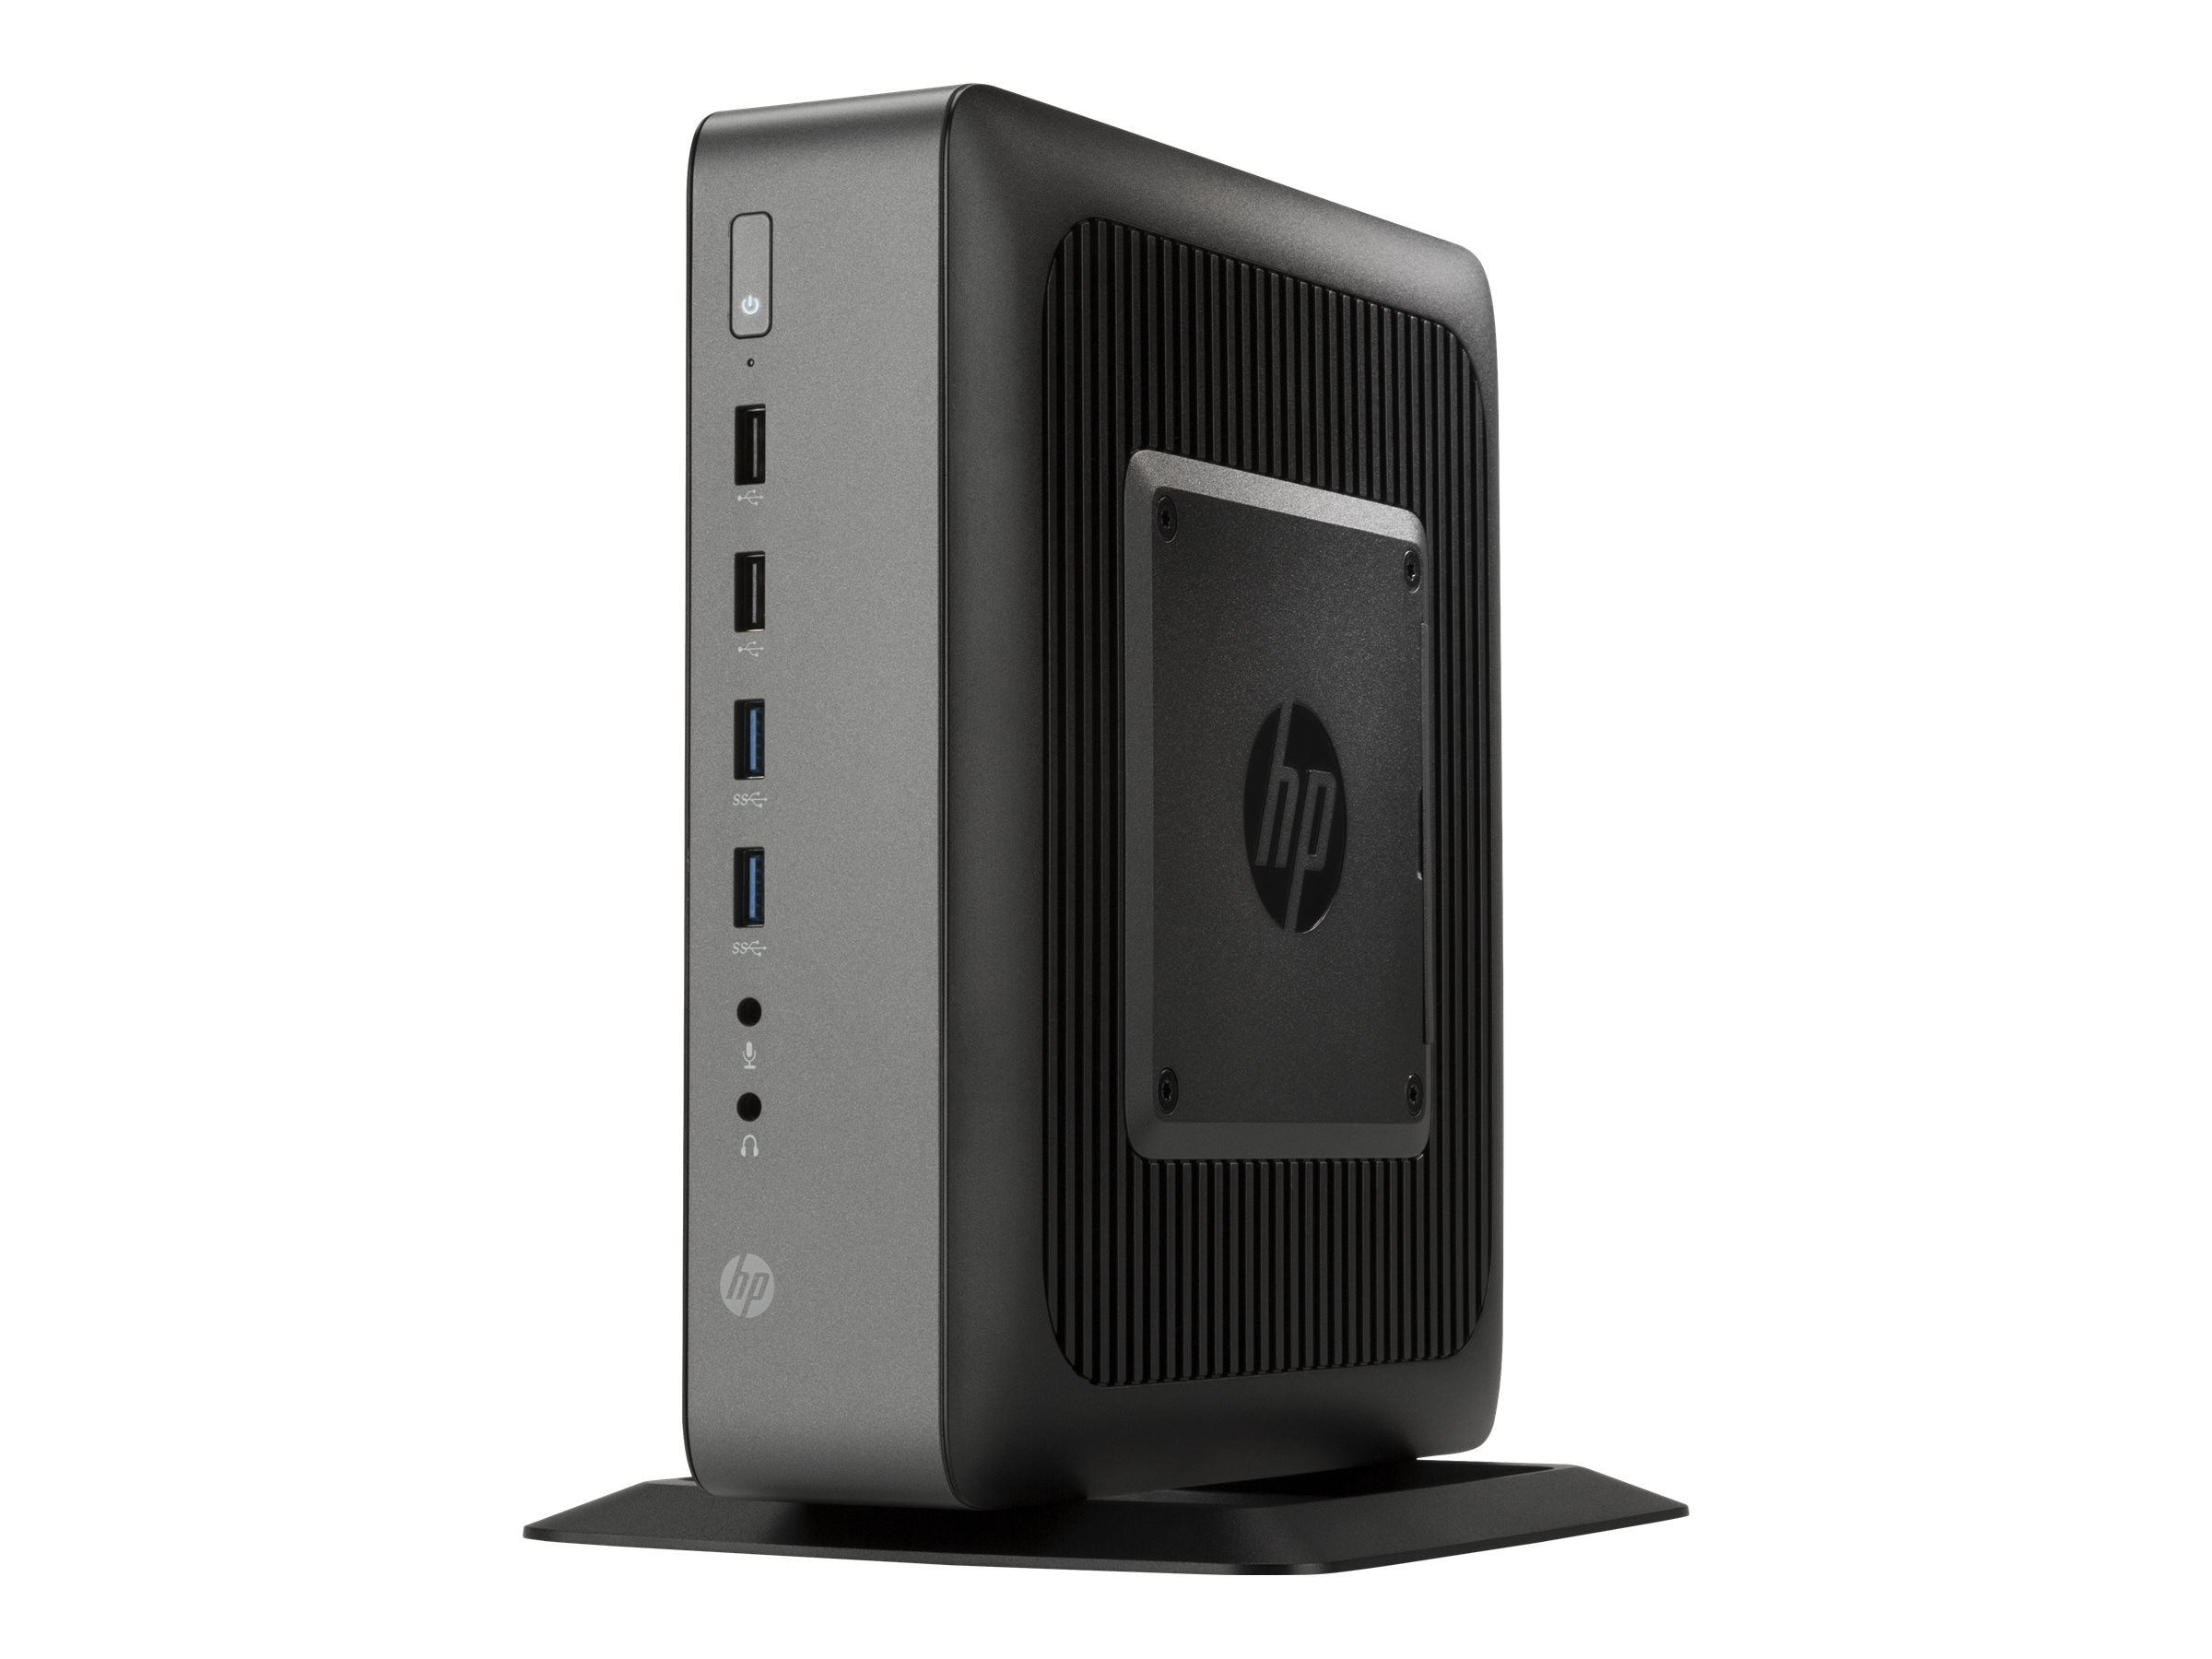 HP t620 PLUS Flexible Thin Client AMD QC GX-420CA 2.0GHz 8GB 64GB Flash HD8400E VGA W10 IoT